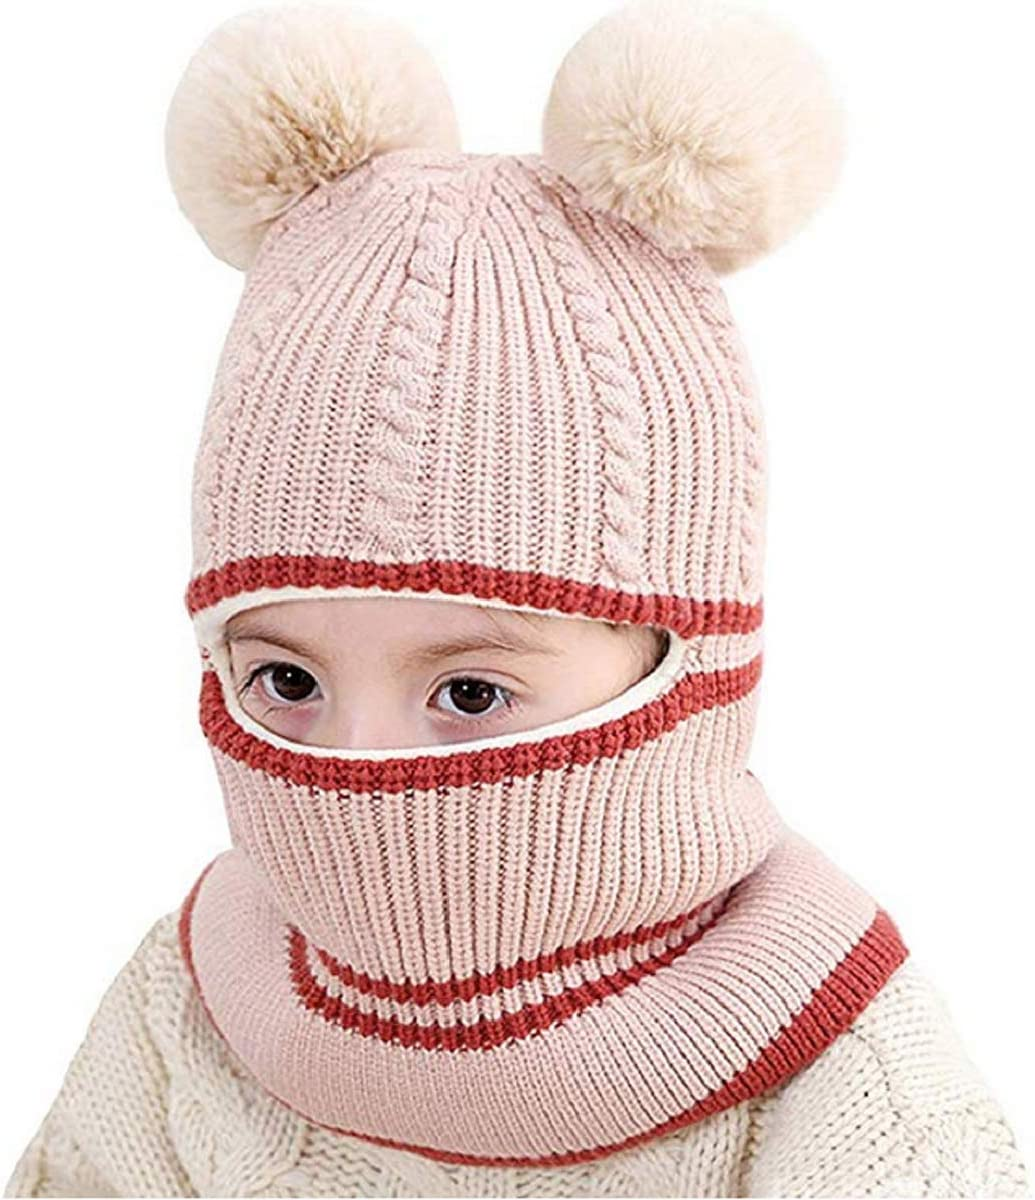 Xingny Baby Winter Scarf Hat Warm Earflap Cap for Kids Winter Hat Windproof Warm Fleece Lined Earflap Hat for Kids Boys Girls